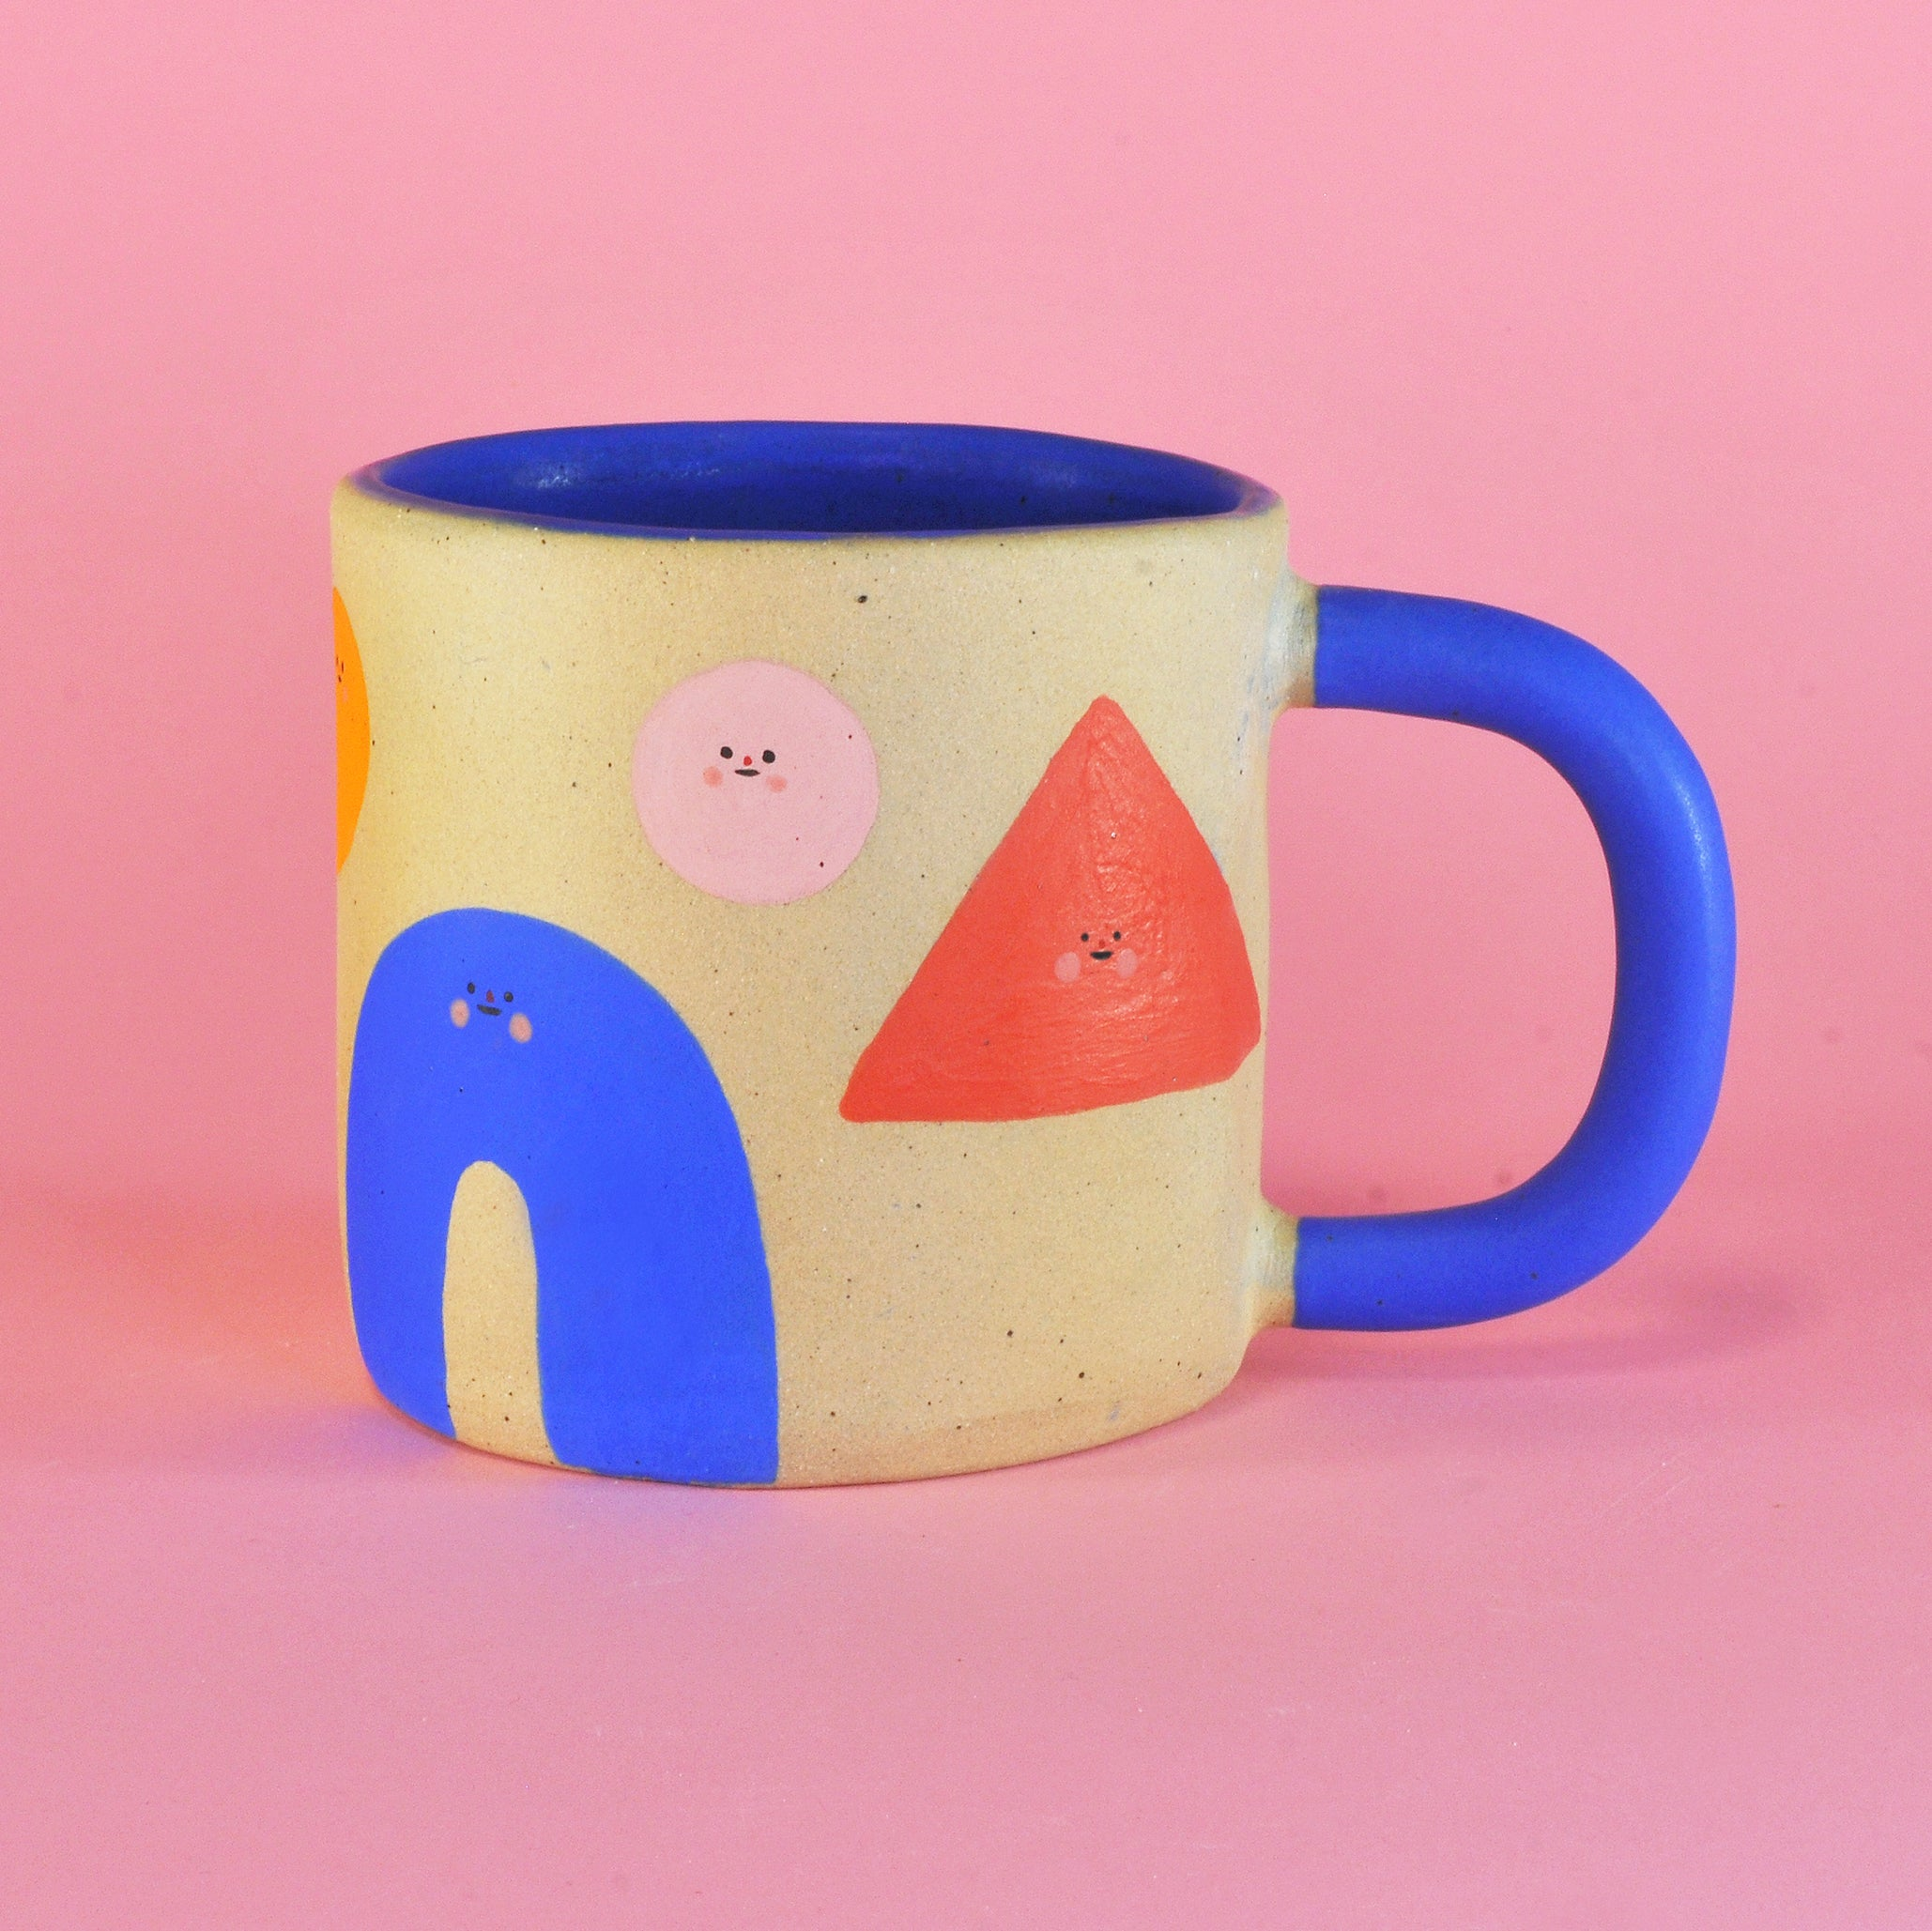 Big Shape Mug